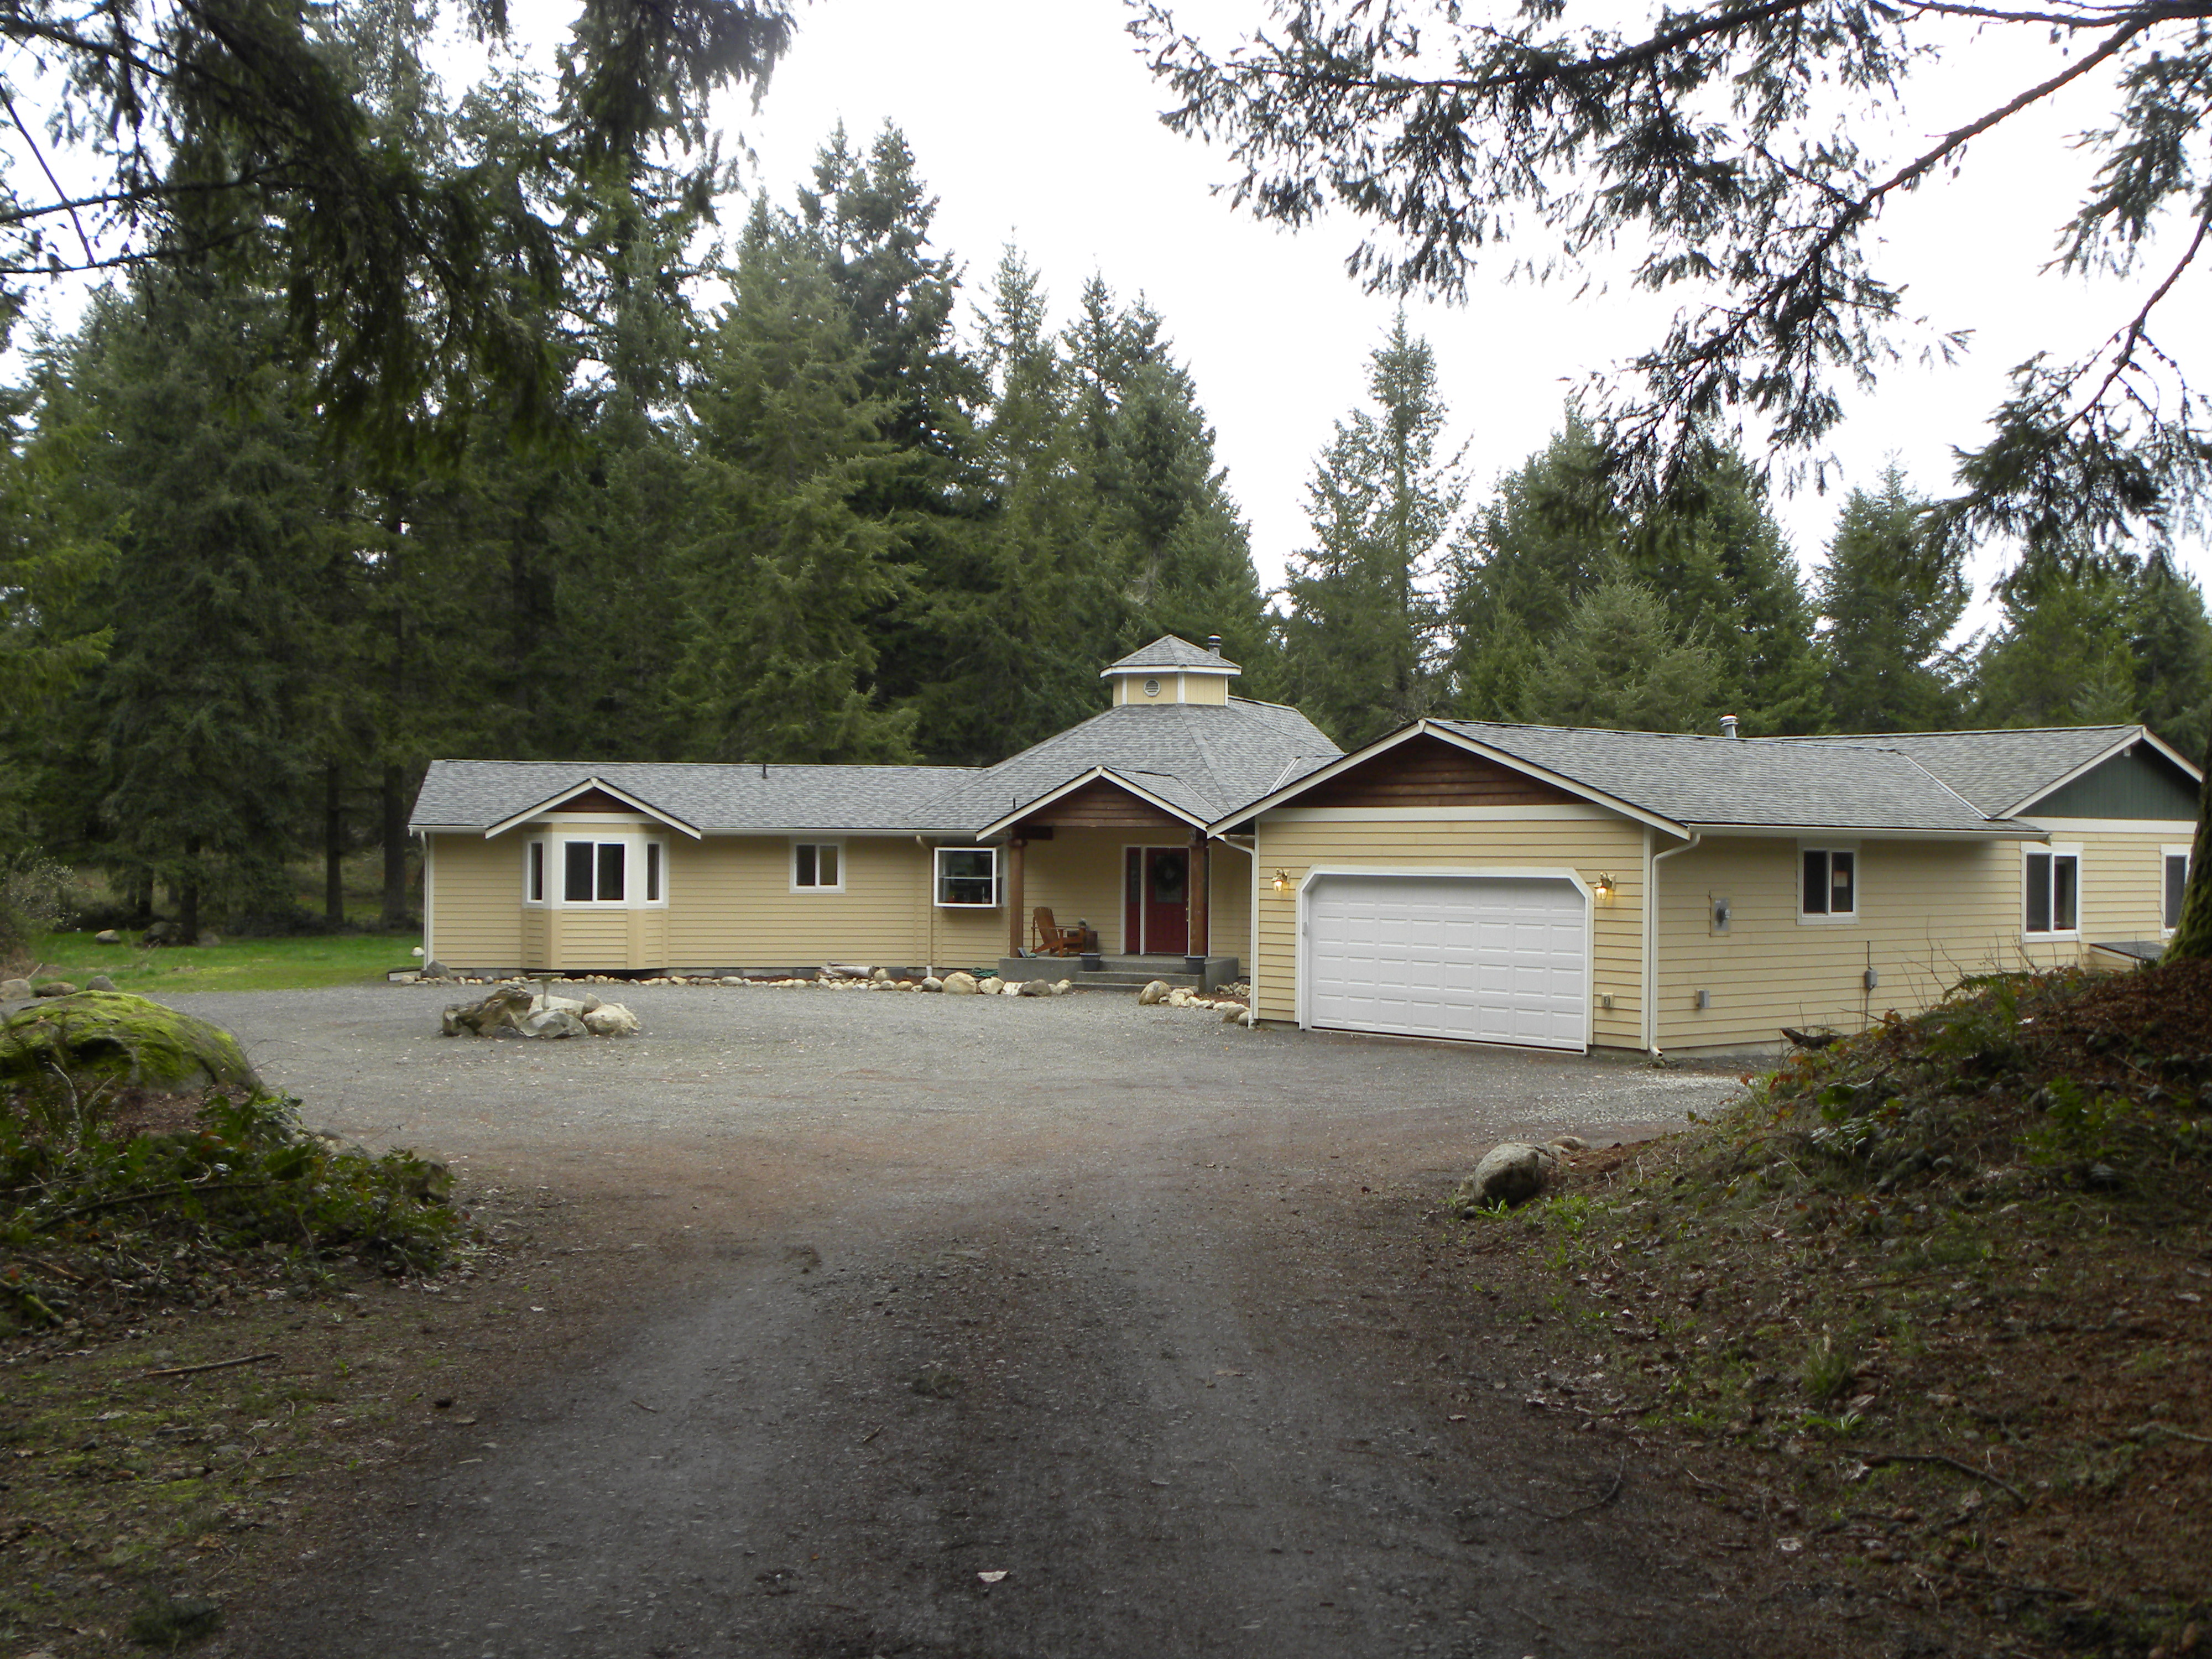 14830 123rd Ave SE, Yelm 98597